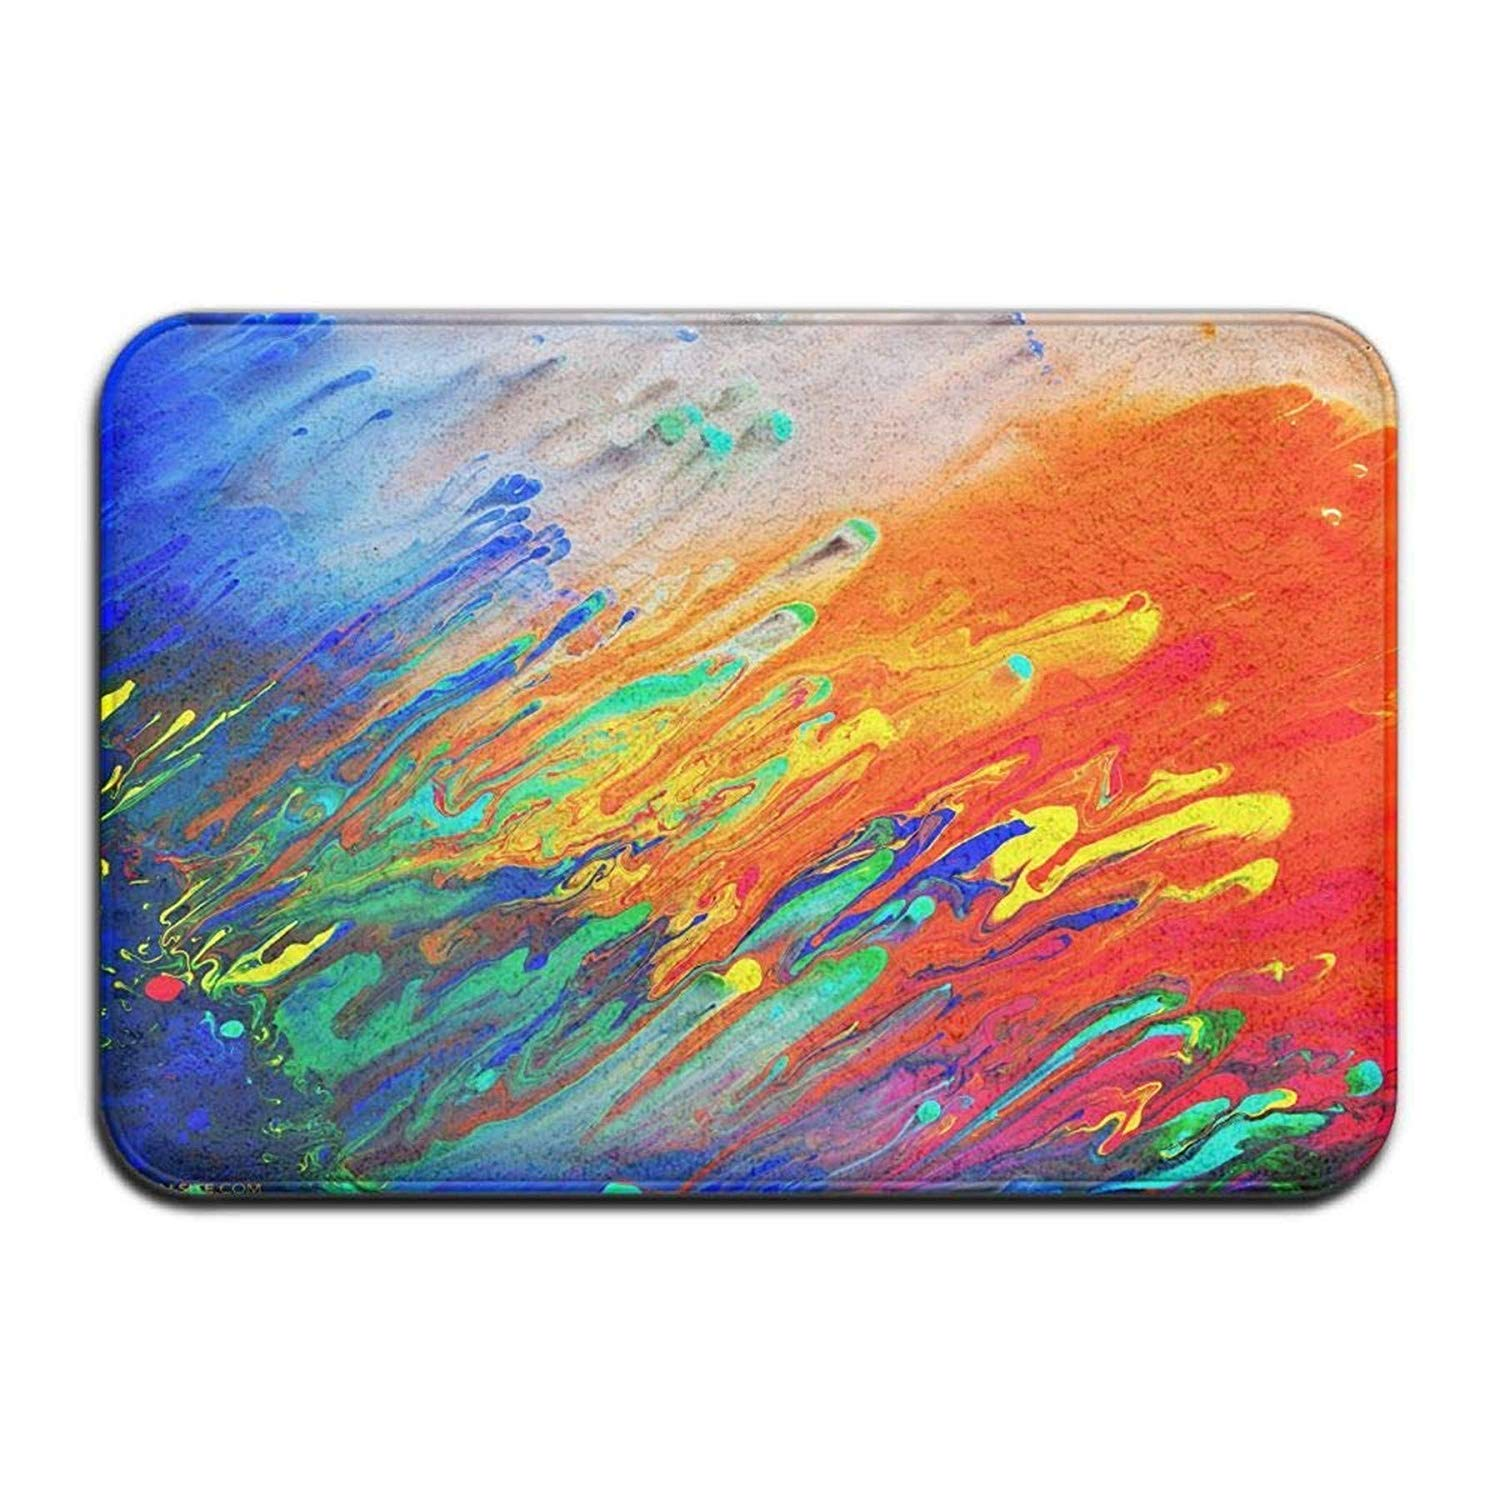 Colorful Abstract Acrylic Painting - HD Wallpaper